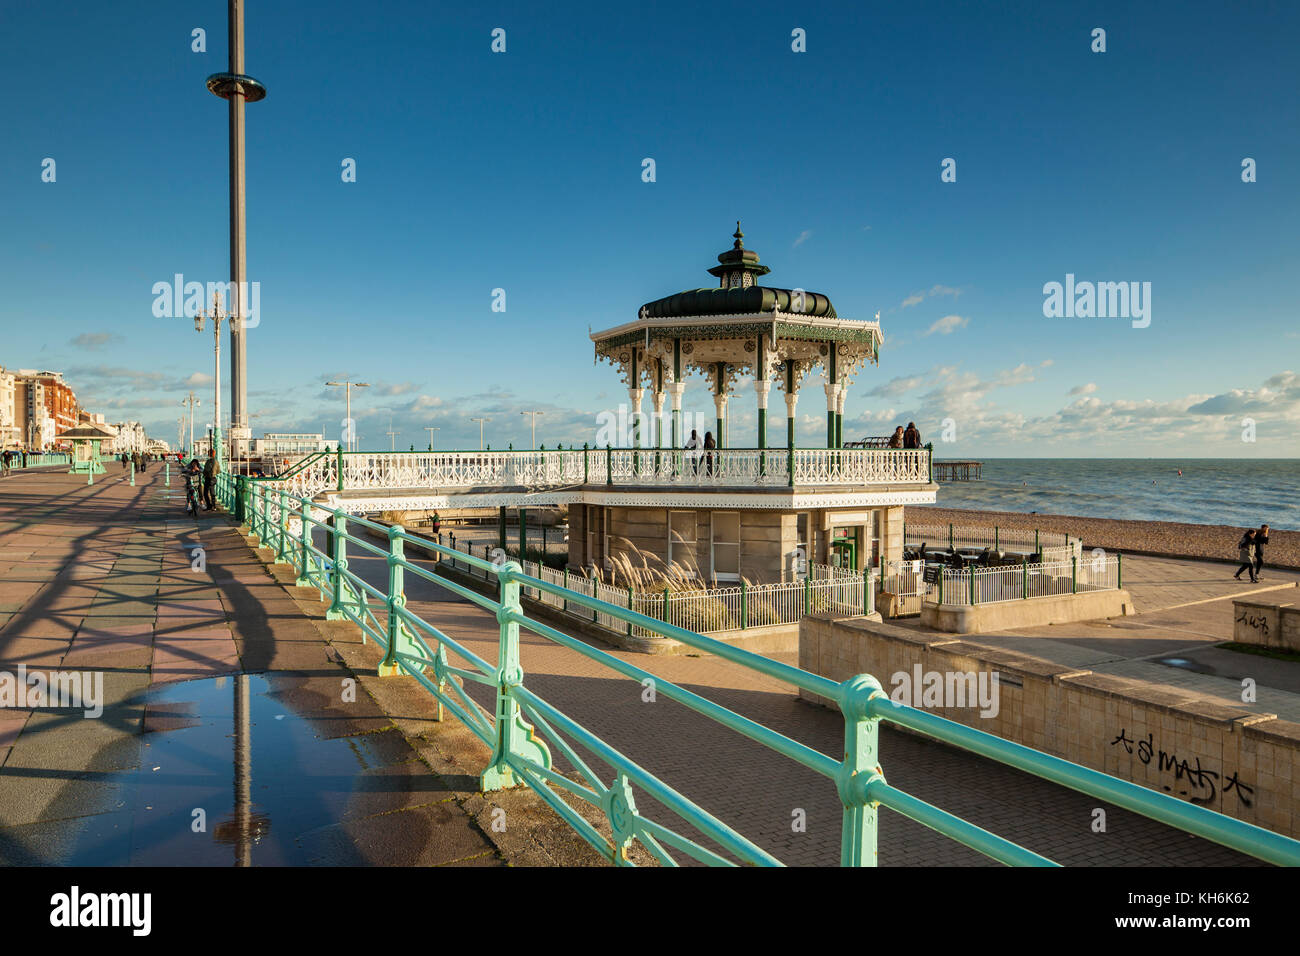 Autumn afternoon on Brighton seafront. The Bandstand and i360 tower in the distance. - Stock Image